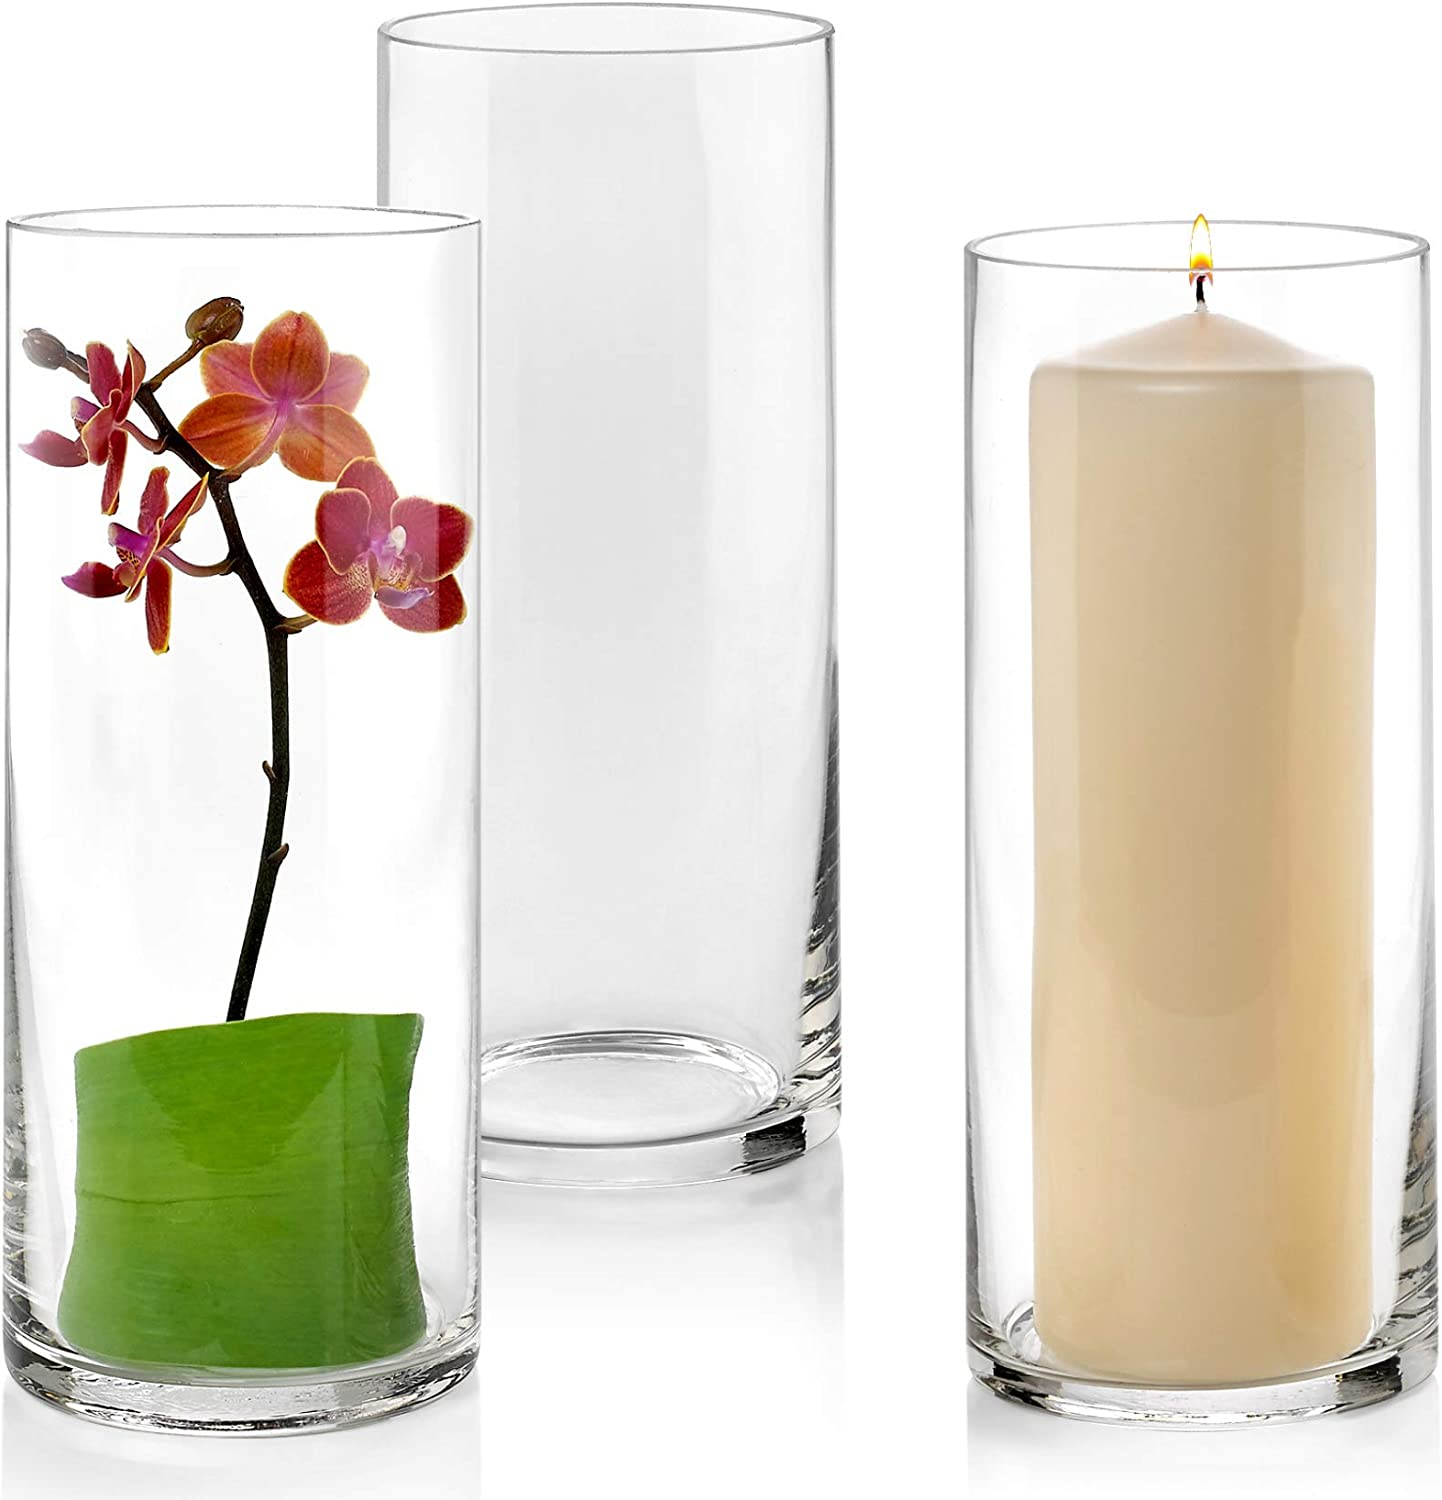 Amazon Com Set Of 3 Glass Cylinder Vases 10 Inch Tall Multi Use Pillar Candle Floating Candles Holders Or Flower Vase Perfect As A Wedding Centerpieces Kitchen Dining